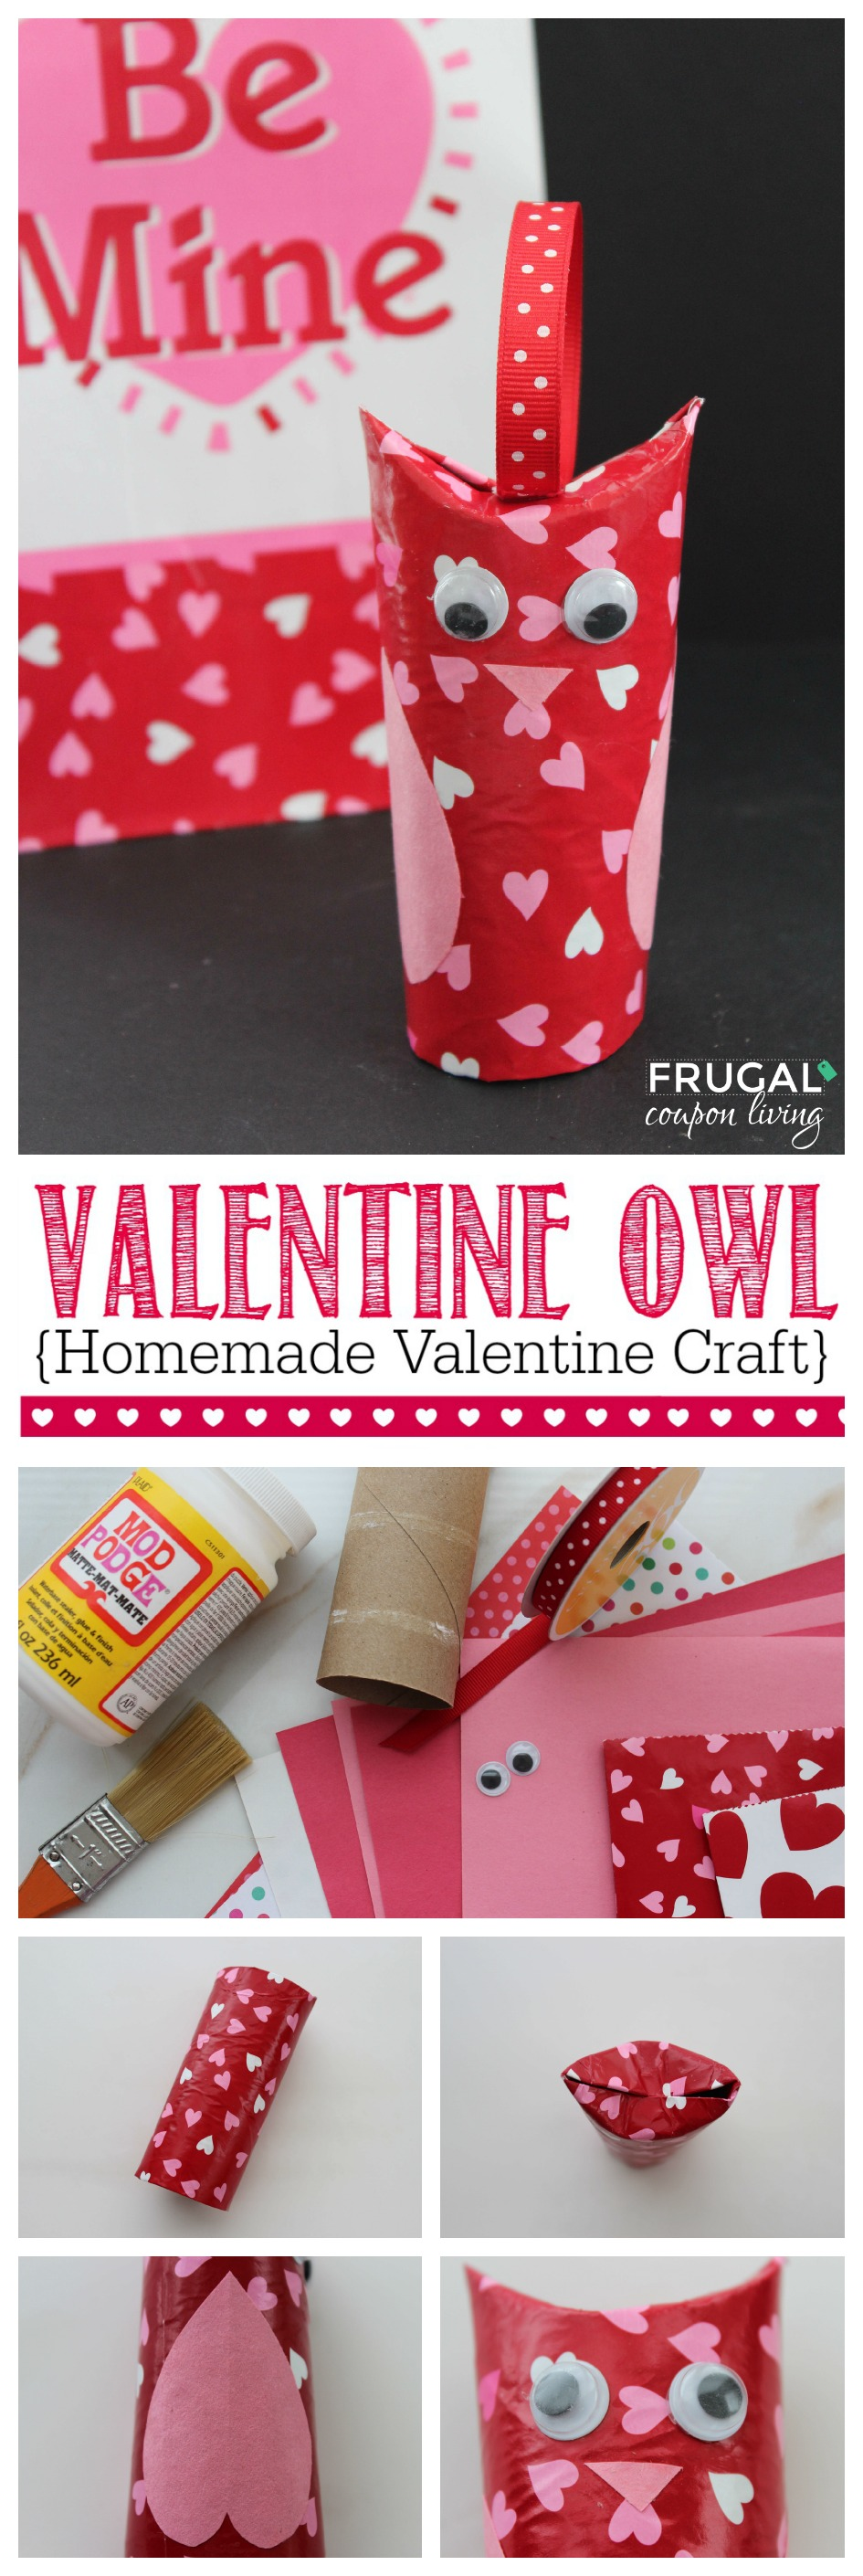 Homemade-Valentine-Owl-Collage-Frugal-Coupon-Living